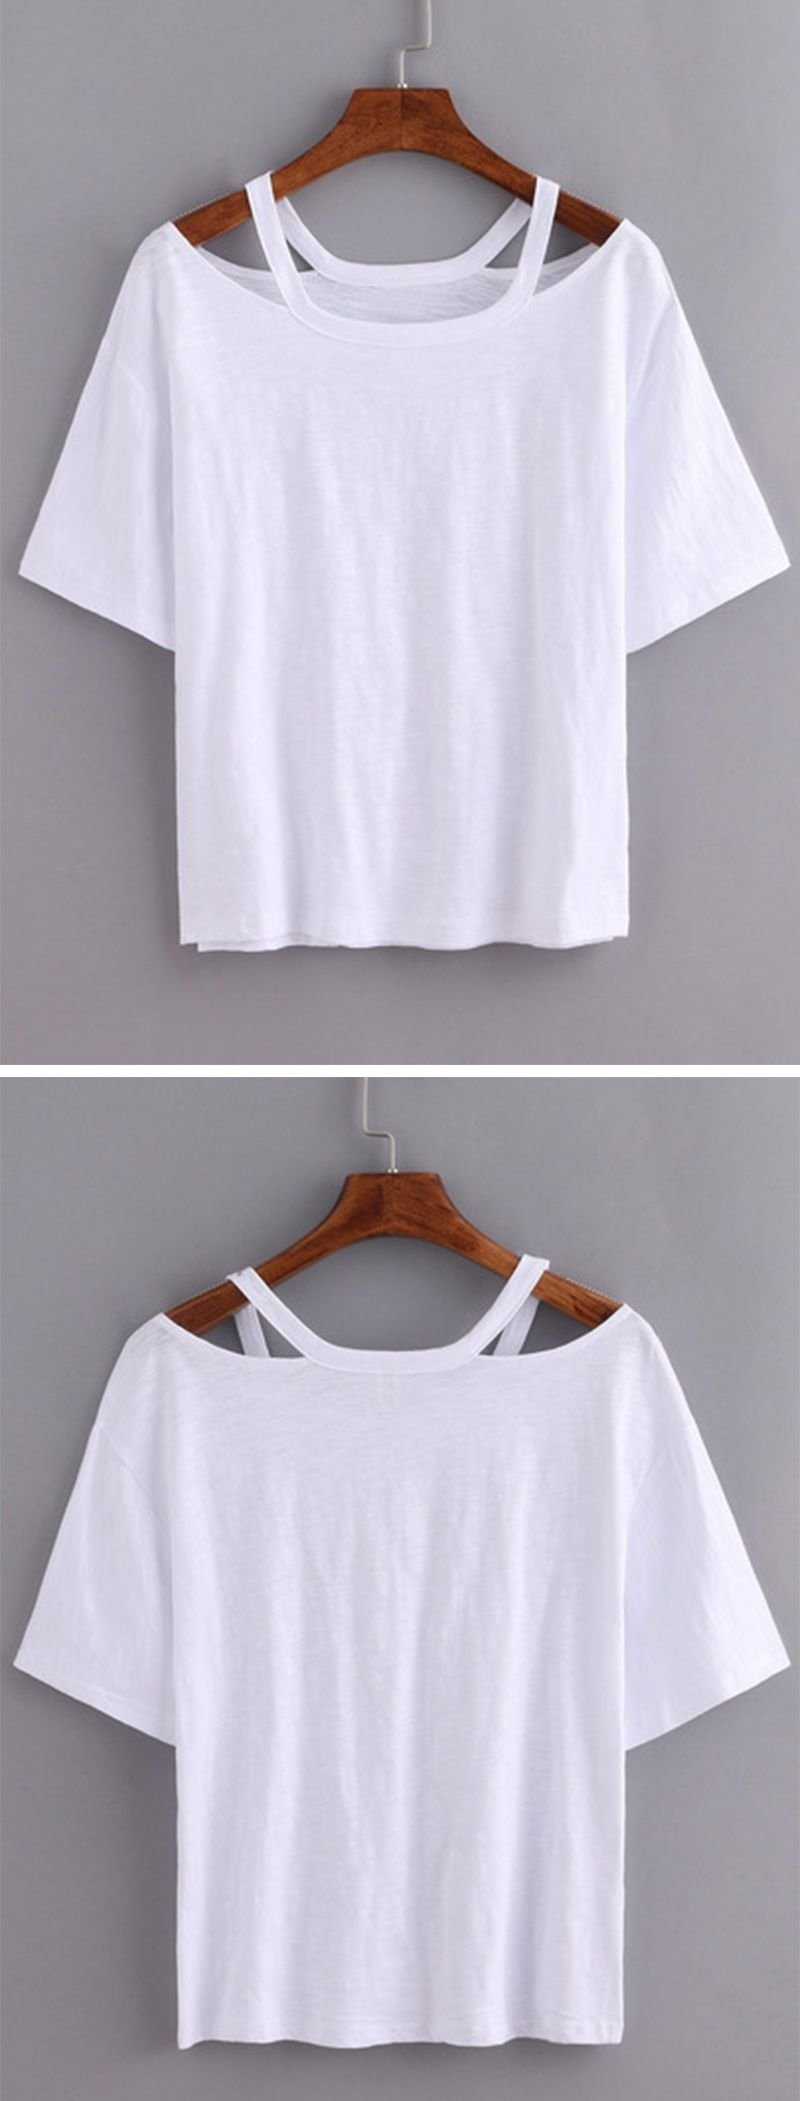 cutout loose-fit white t-shirt with <3 from jdzigner www.jdzigner